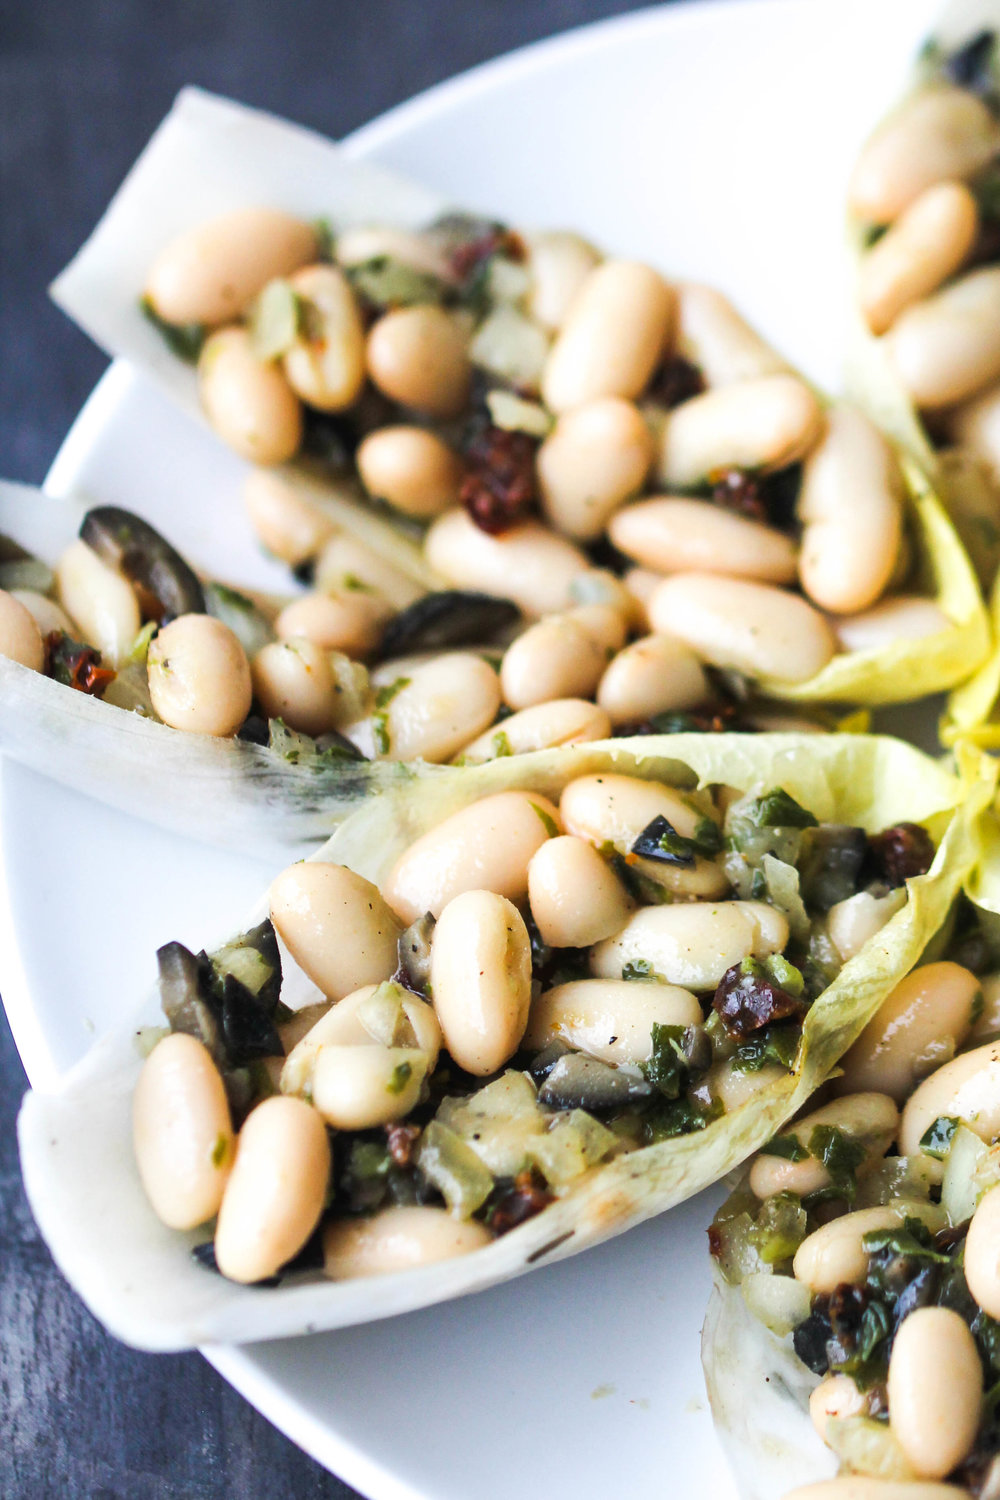 Cannellini Bean Salad with Basil and Sun-Dried Tomatoes makes a lovely light lunch or can be enjoyed as a refreshing side, or take it to a picnic, potluck. It is naturally vegan & gluten-free.